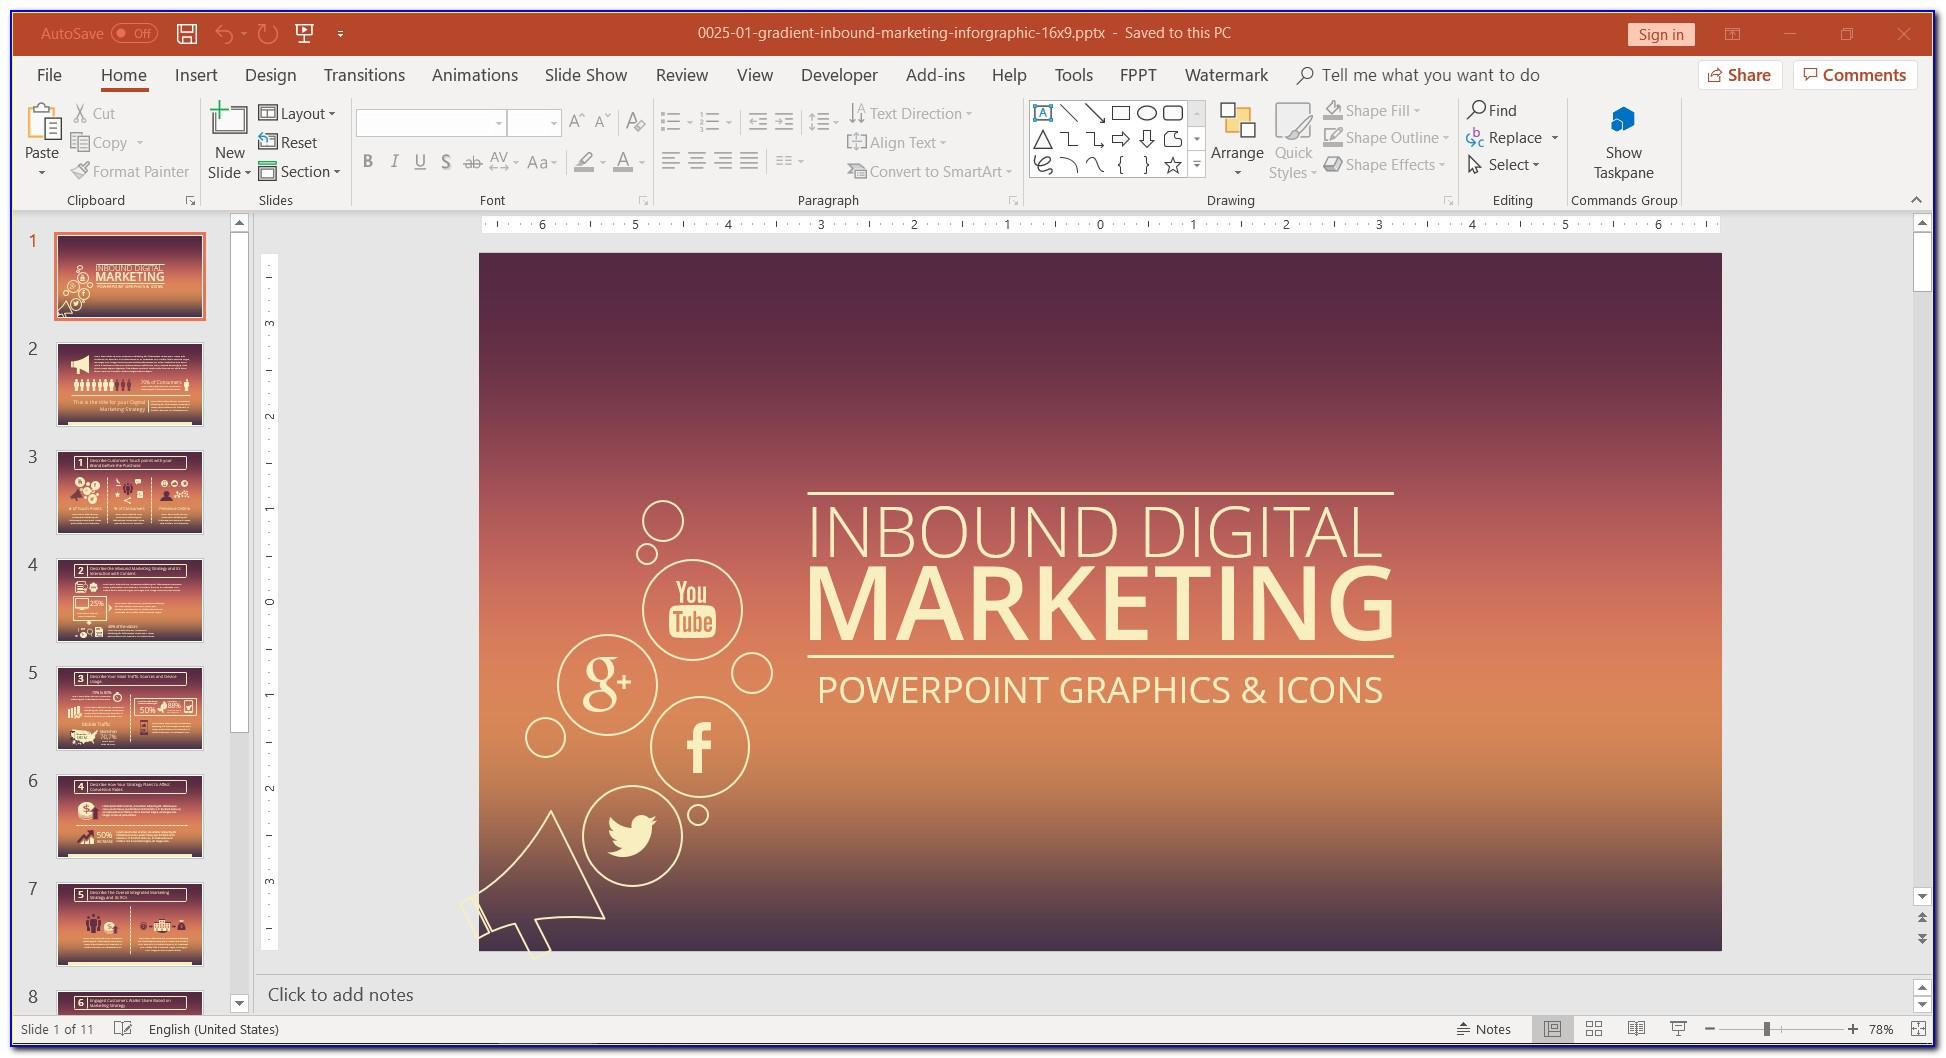 Digital Marketing Powerpoint Templates Free Download